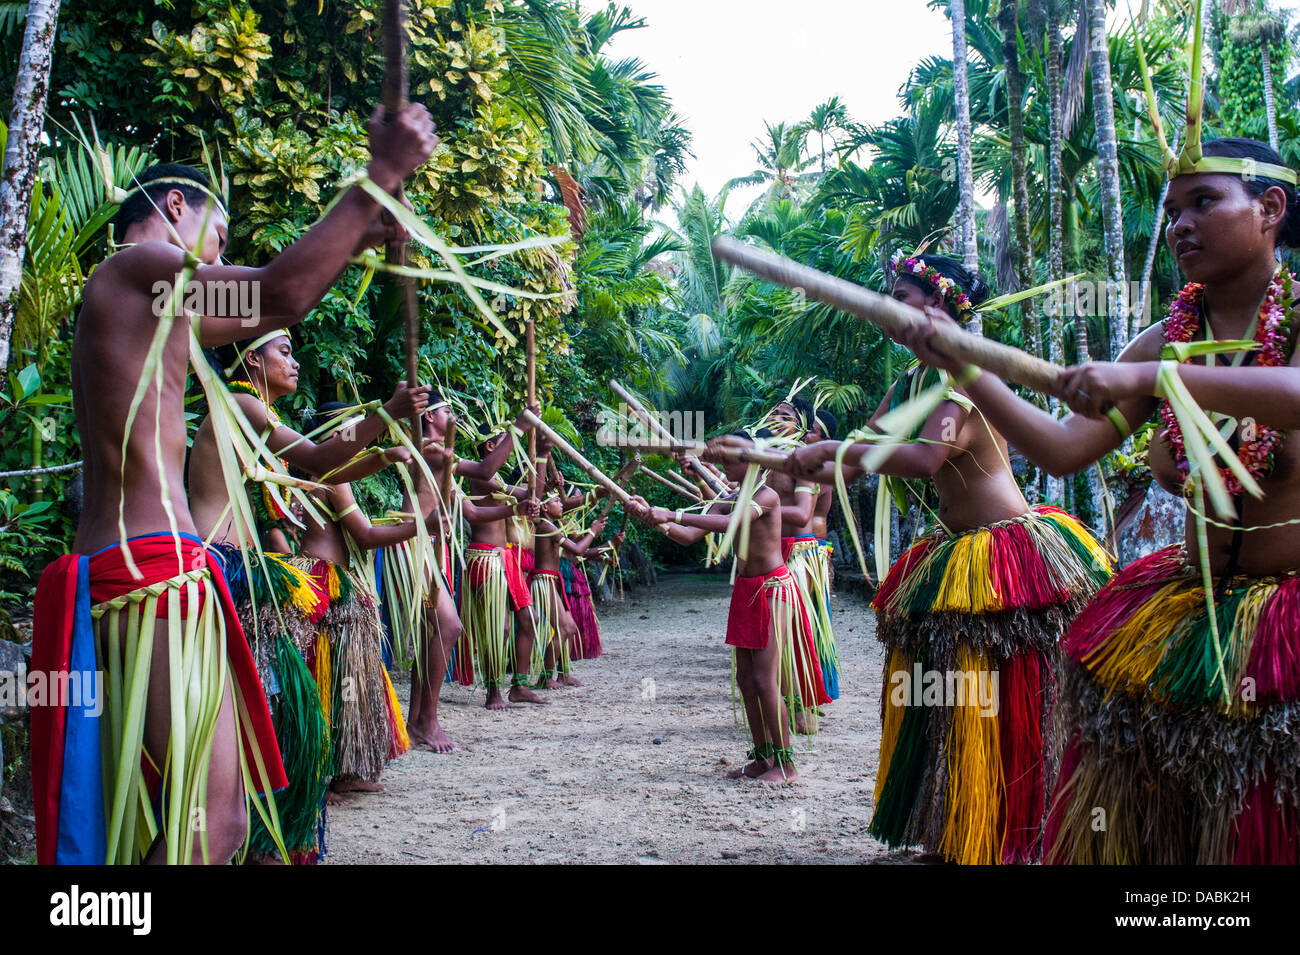 Stick dance from the tribal people of the island of Yap, Federated States of Micronesia, Caroline Islands, Pacific - Stock Image